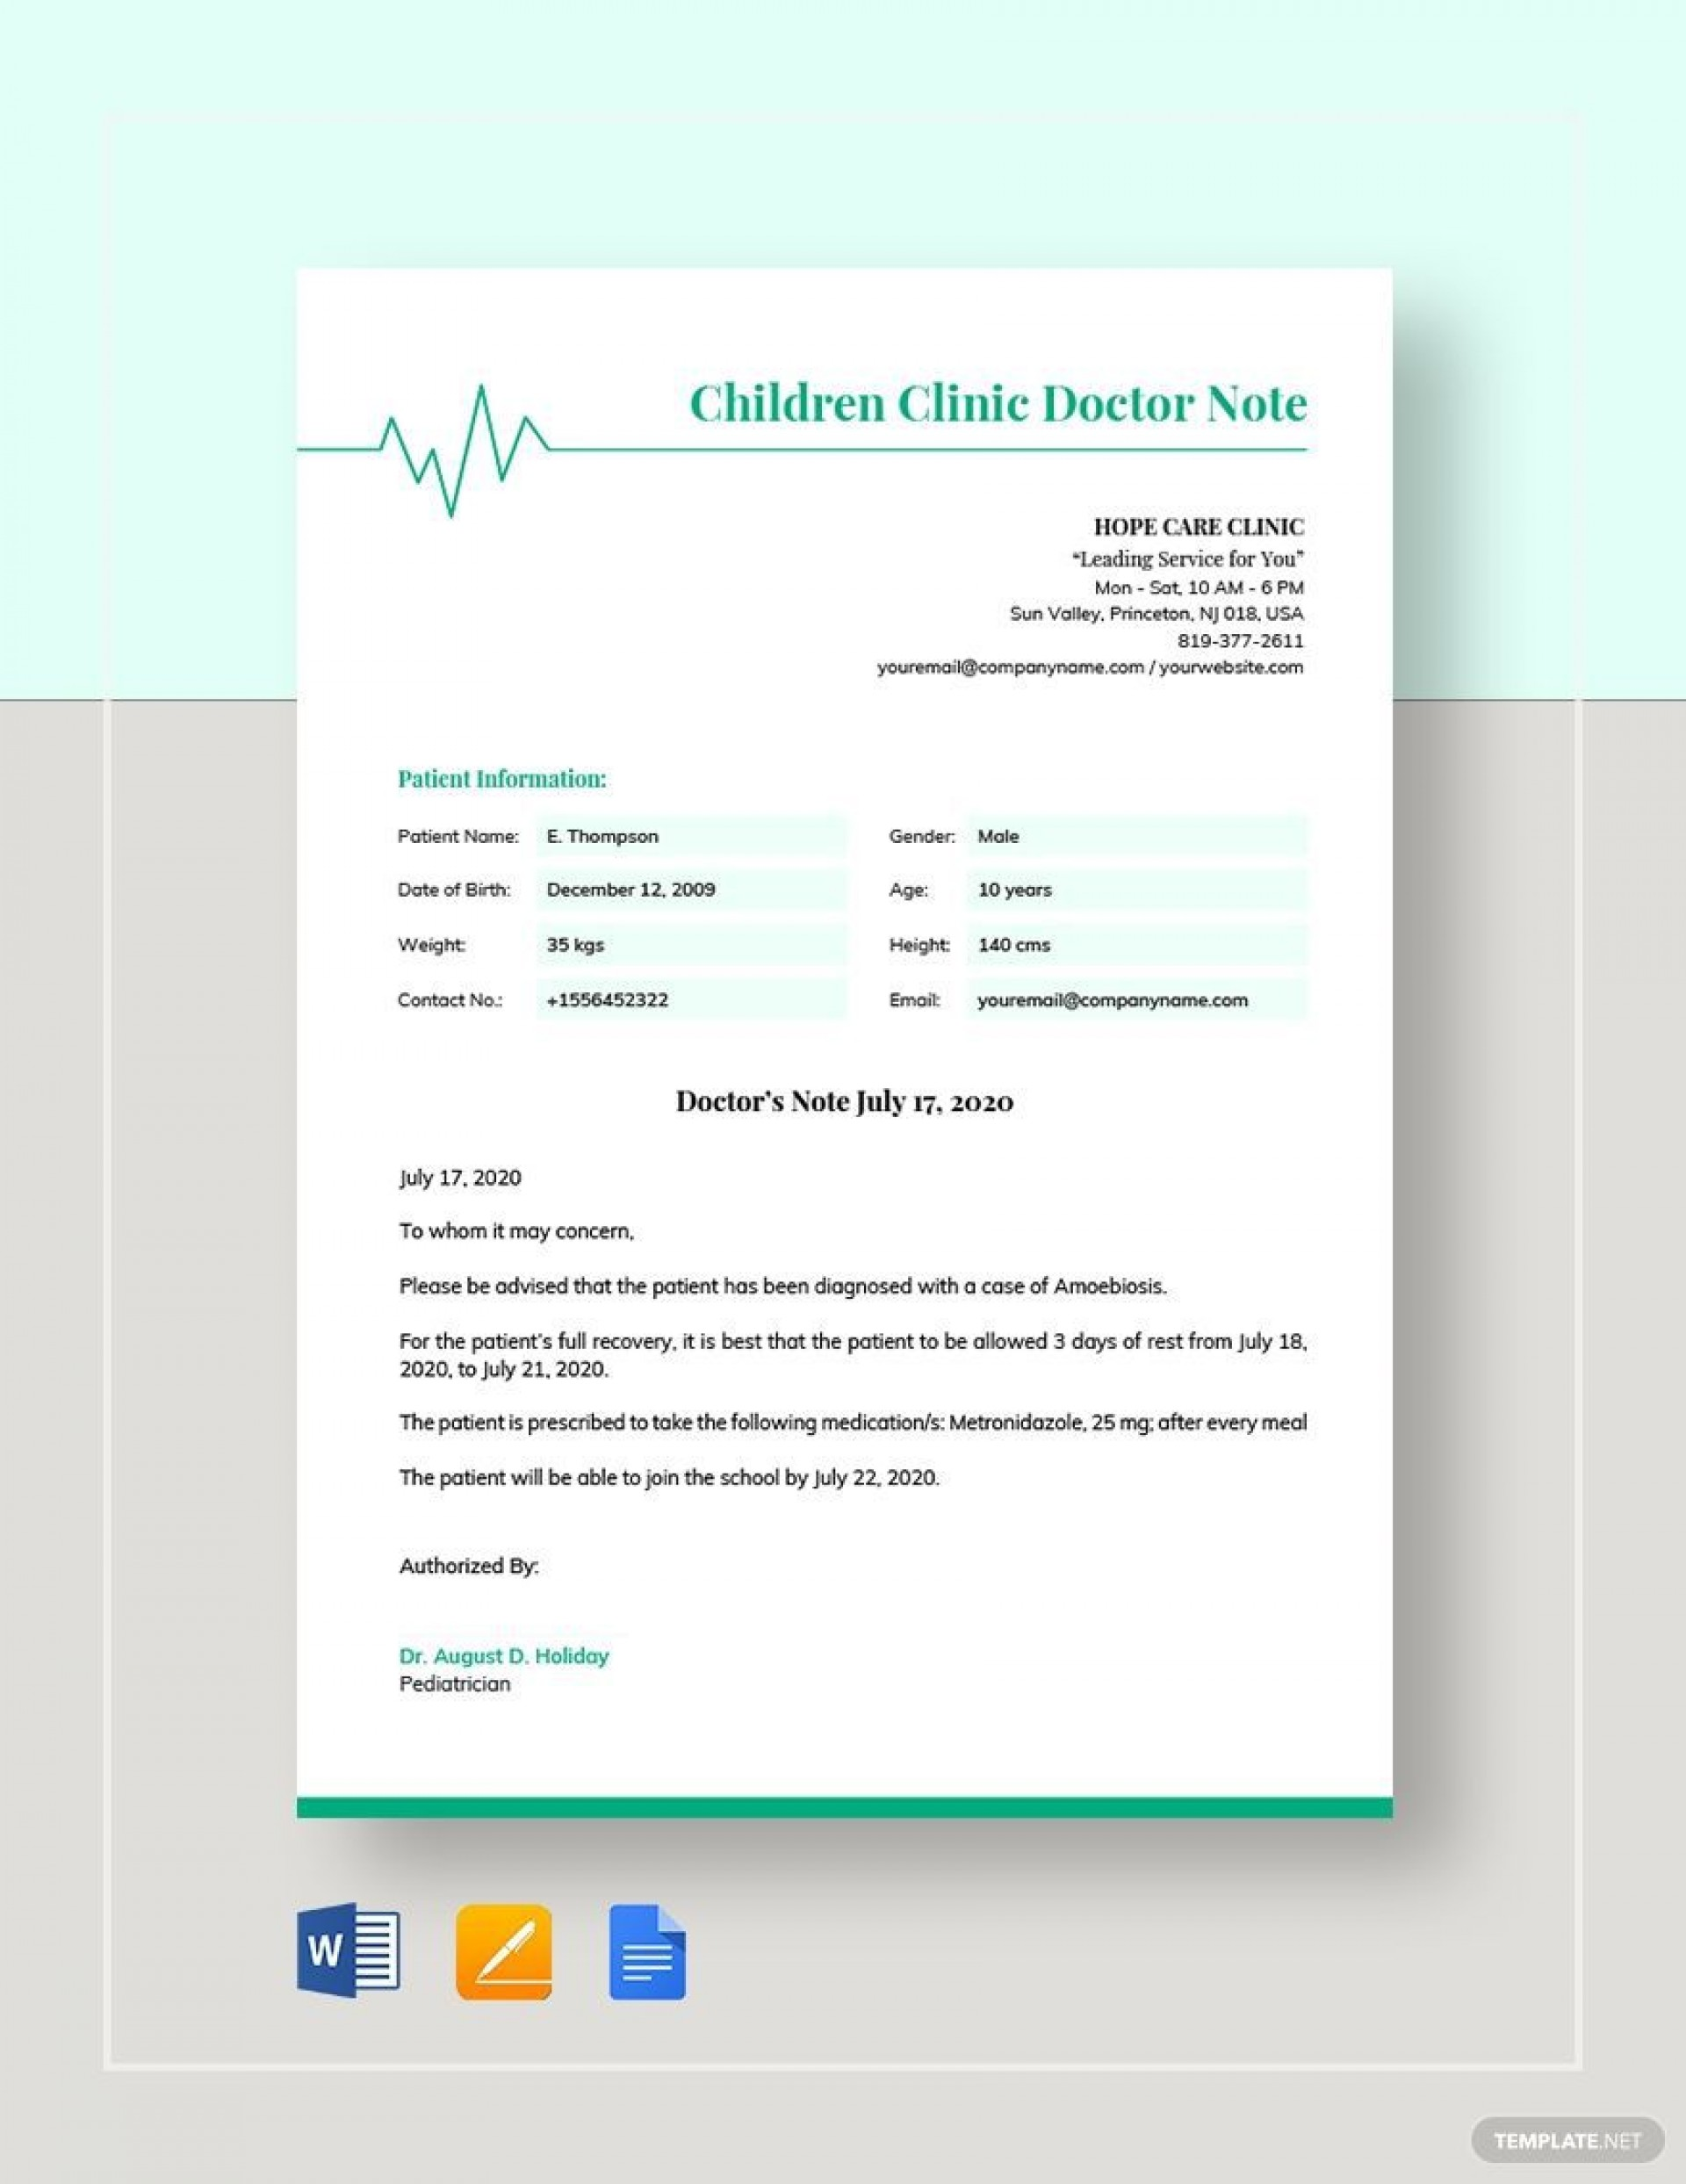 008 Archaicawful Doctor Note Template Word High Def  Fake Document For Work1920